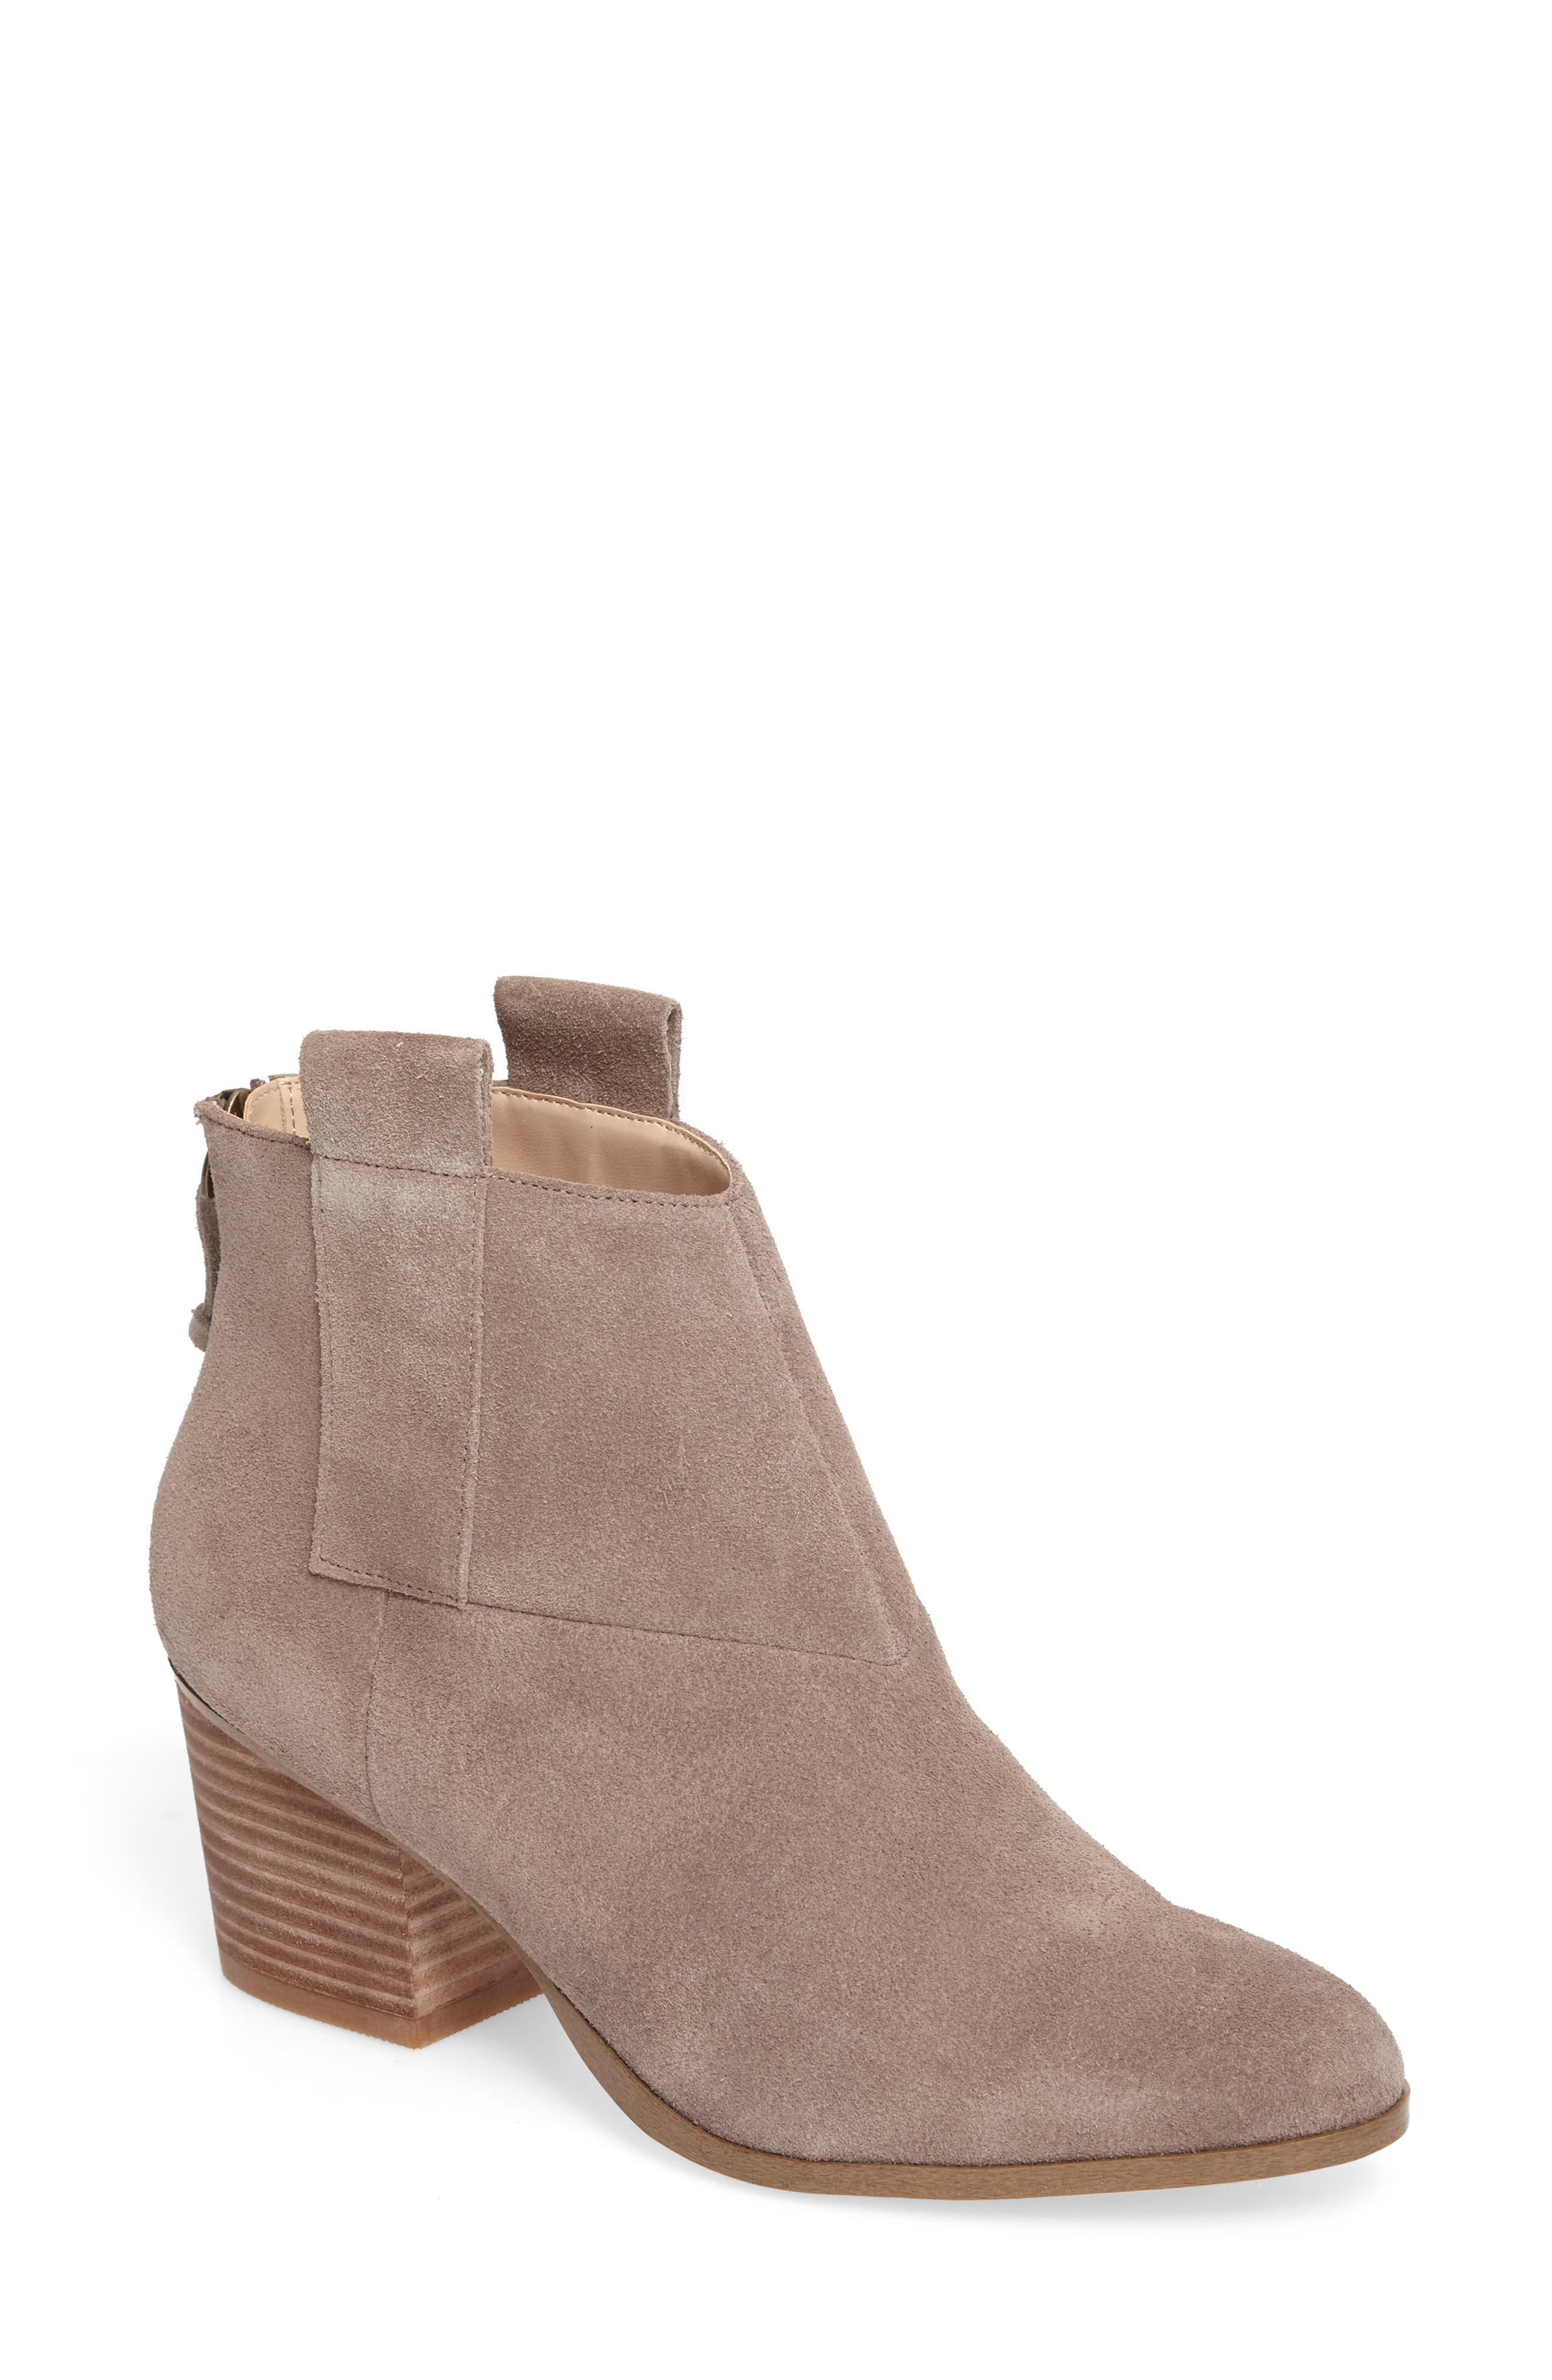 Main Image - Sole Society Oskar Bootie (Women)